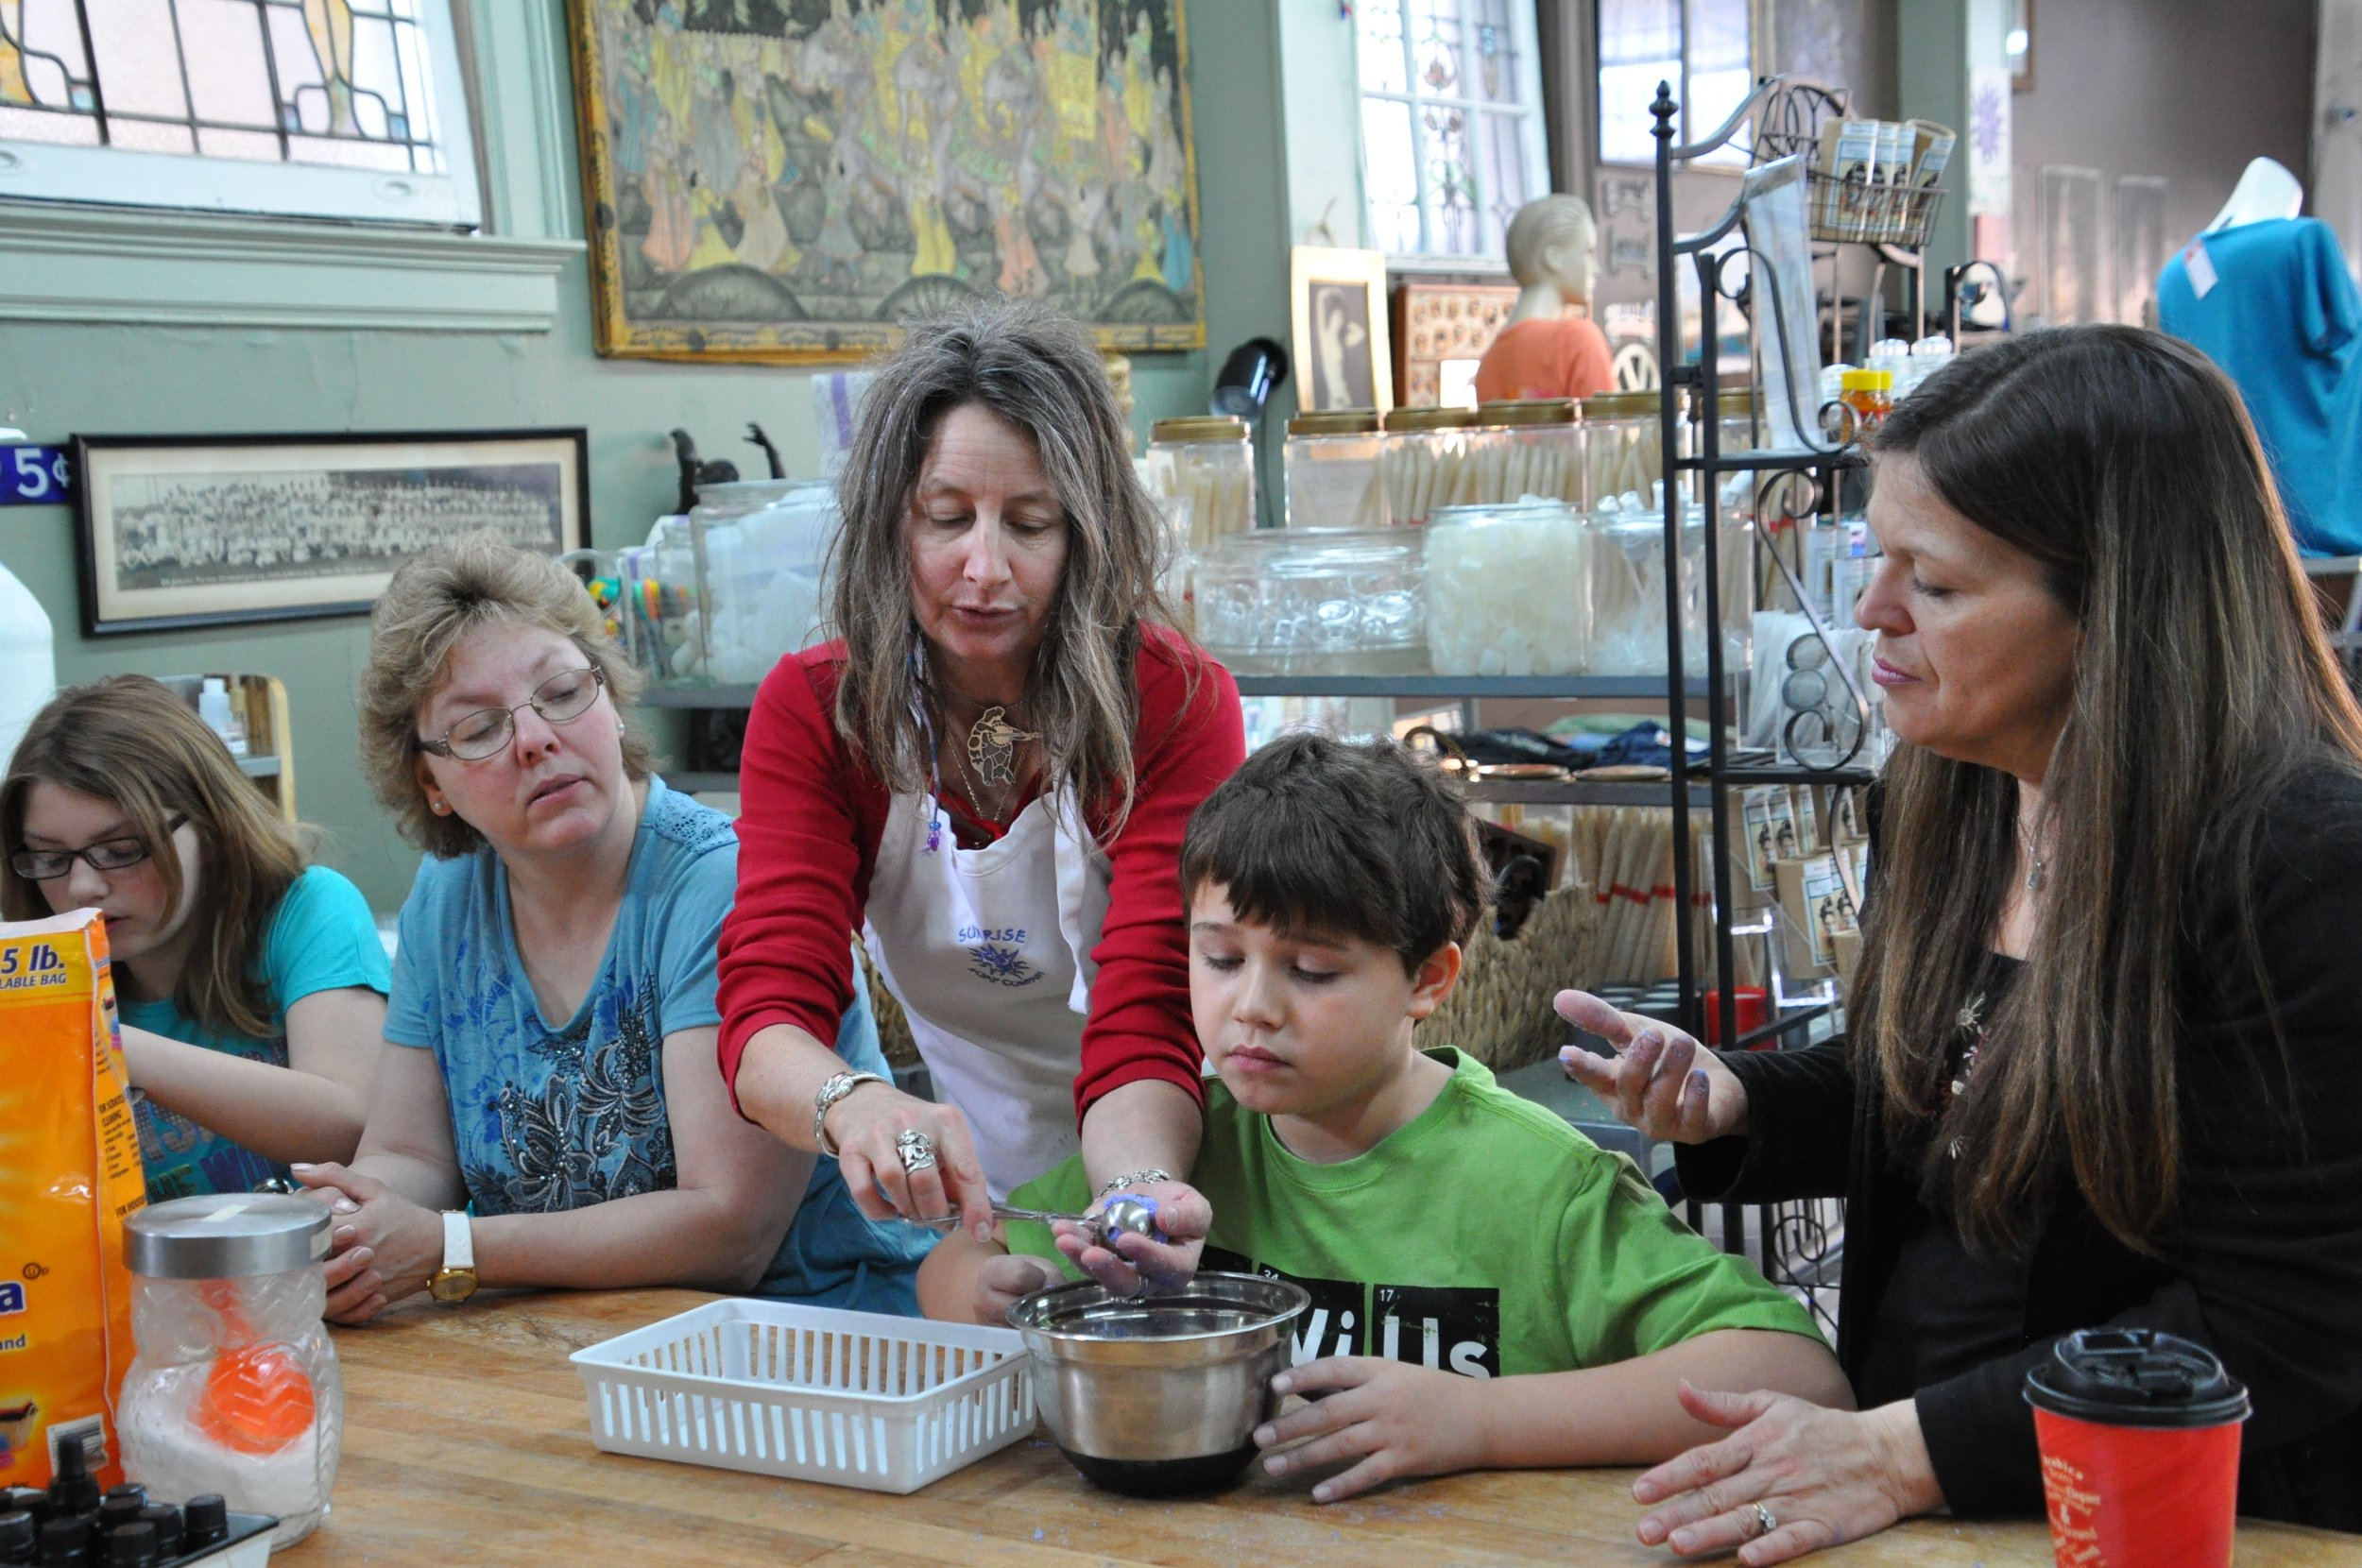 Everyone can be a maker at Sunrise Soap Company, just one of many kid-friendly attractions in Downtown York. Photo courtesy of MidAtlanticDayTrips.com.